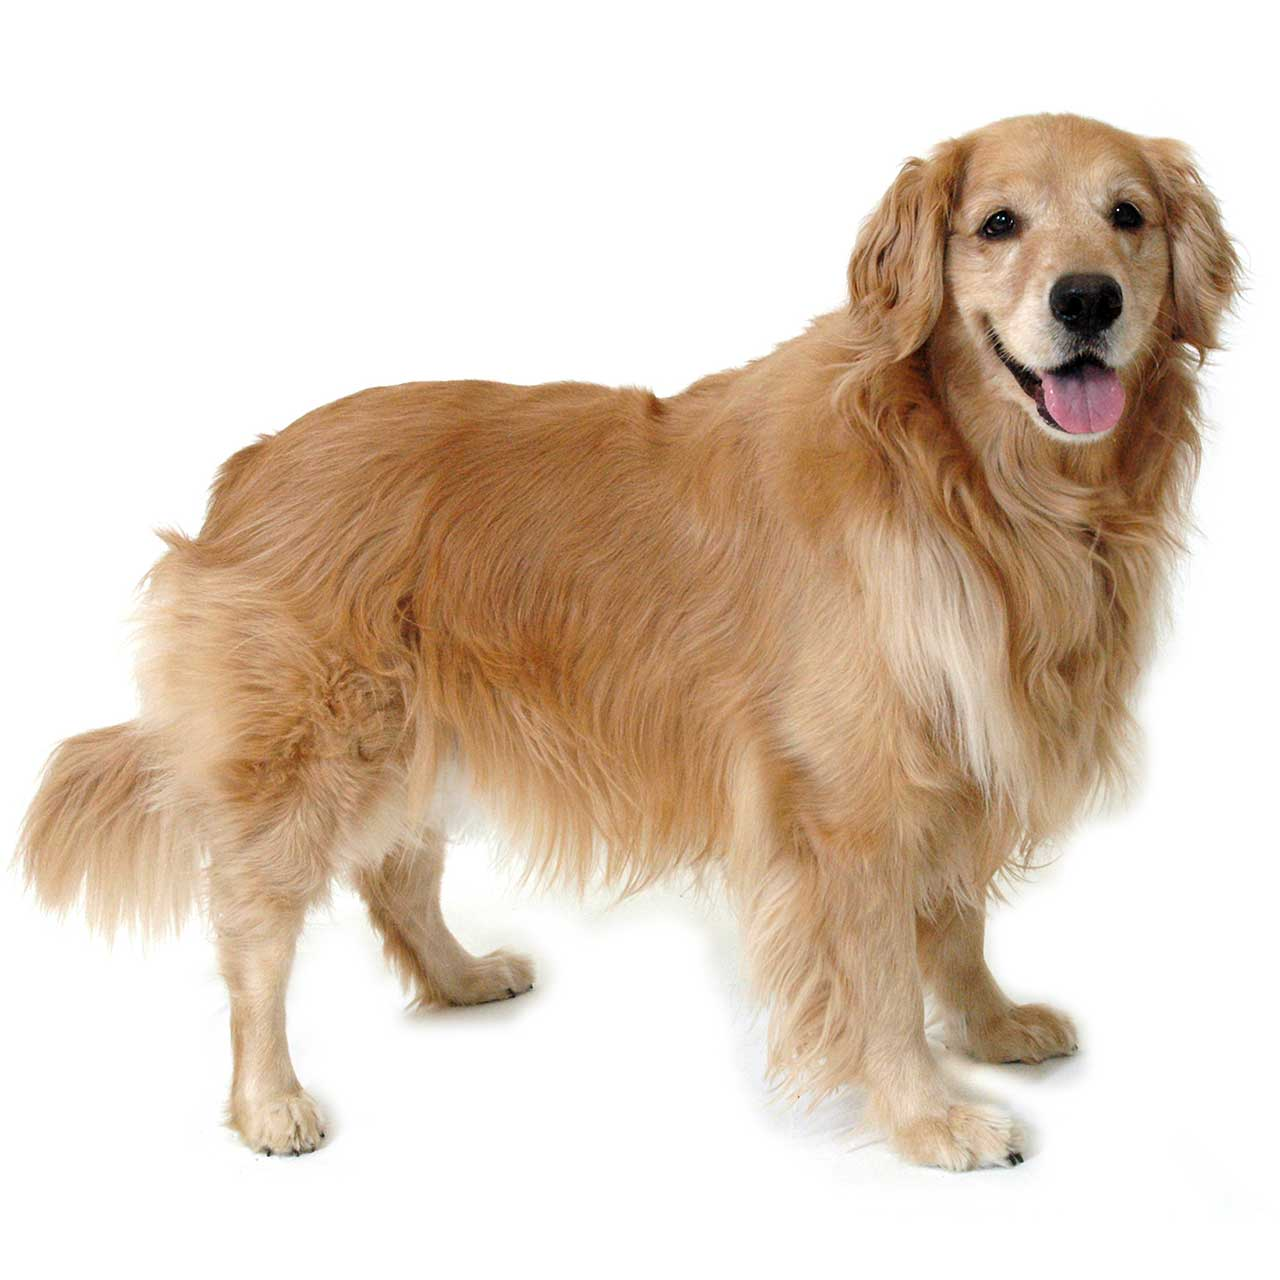 Golden Retriever Dog Breed » Information, Pictures, & More